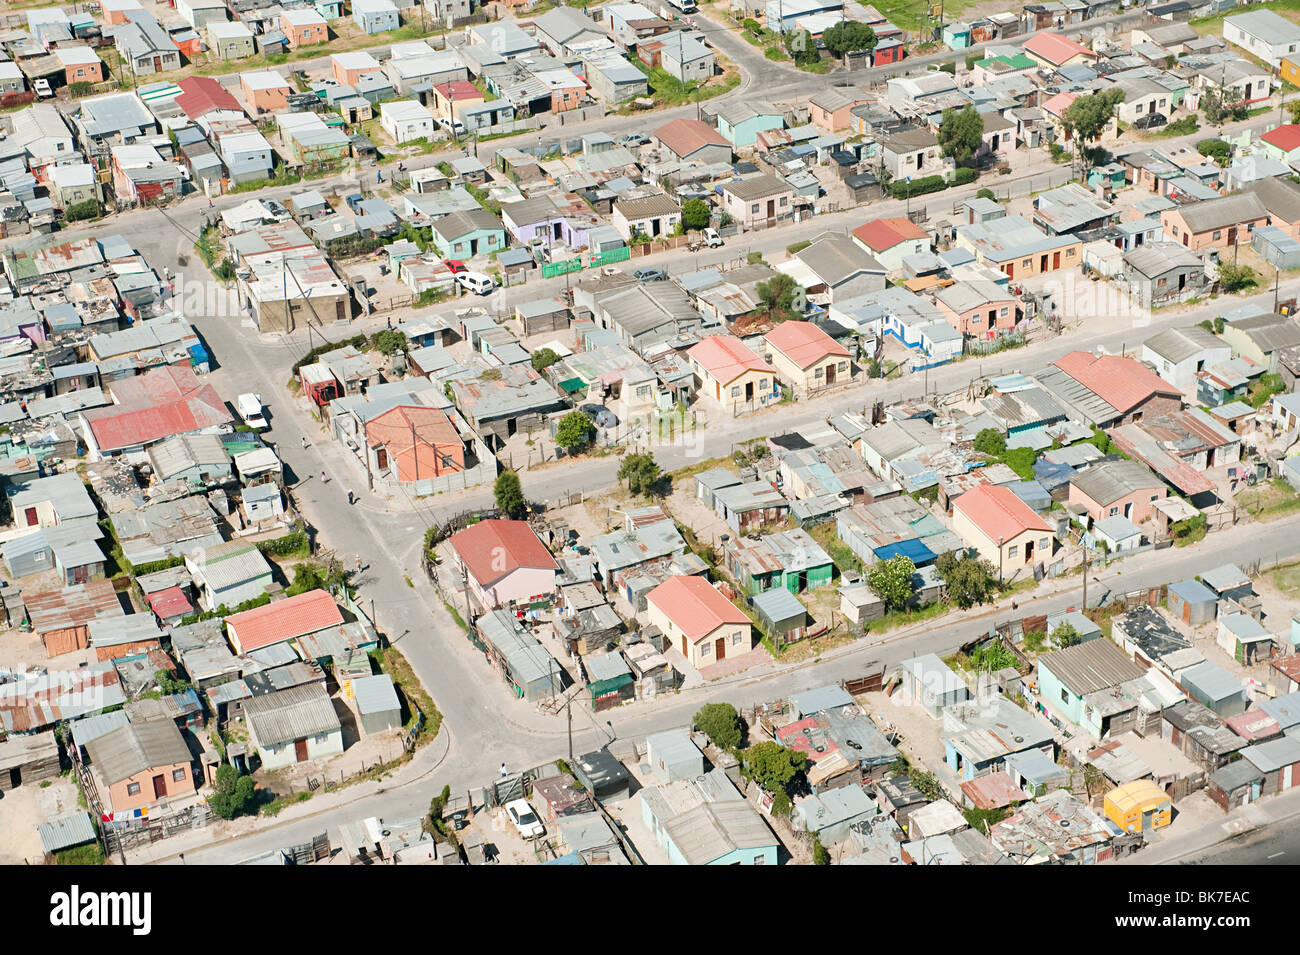 Aerial view of cape town shanty town - Stock Image